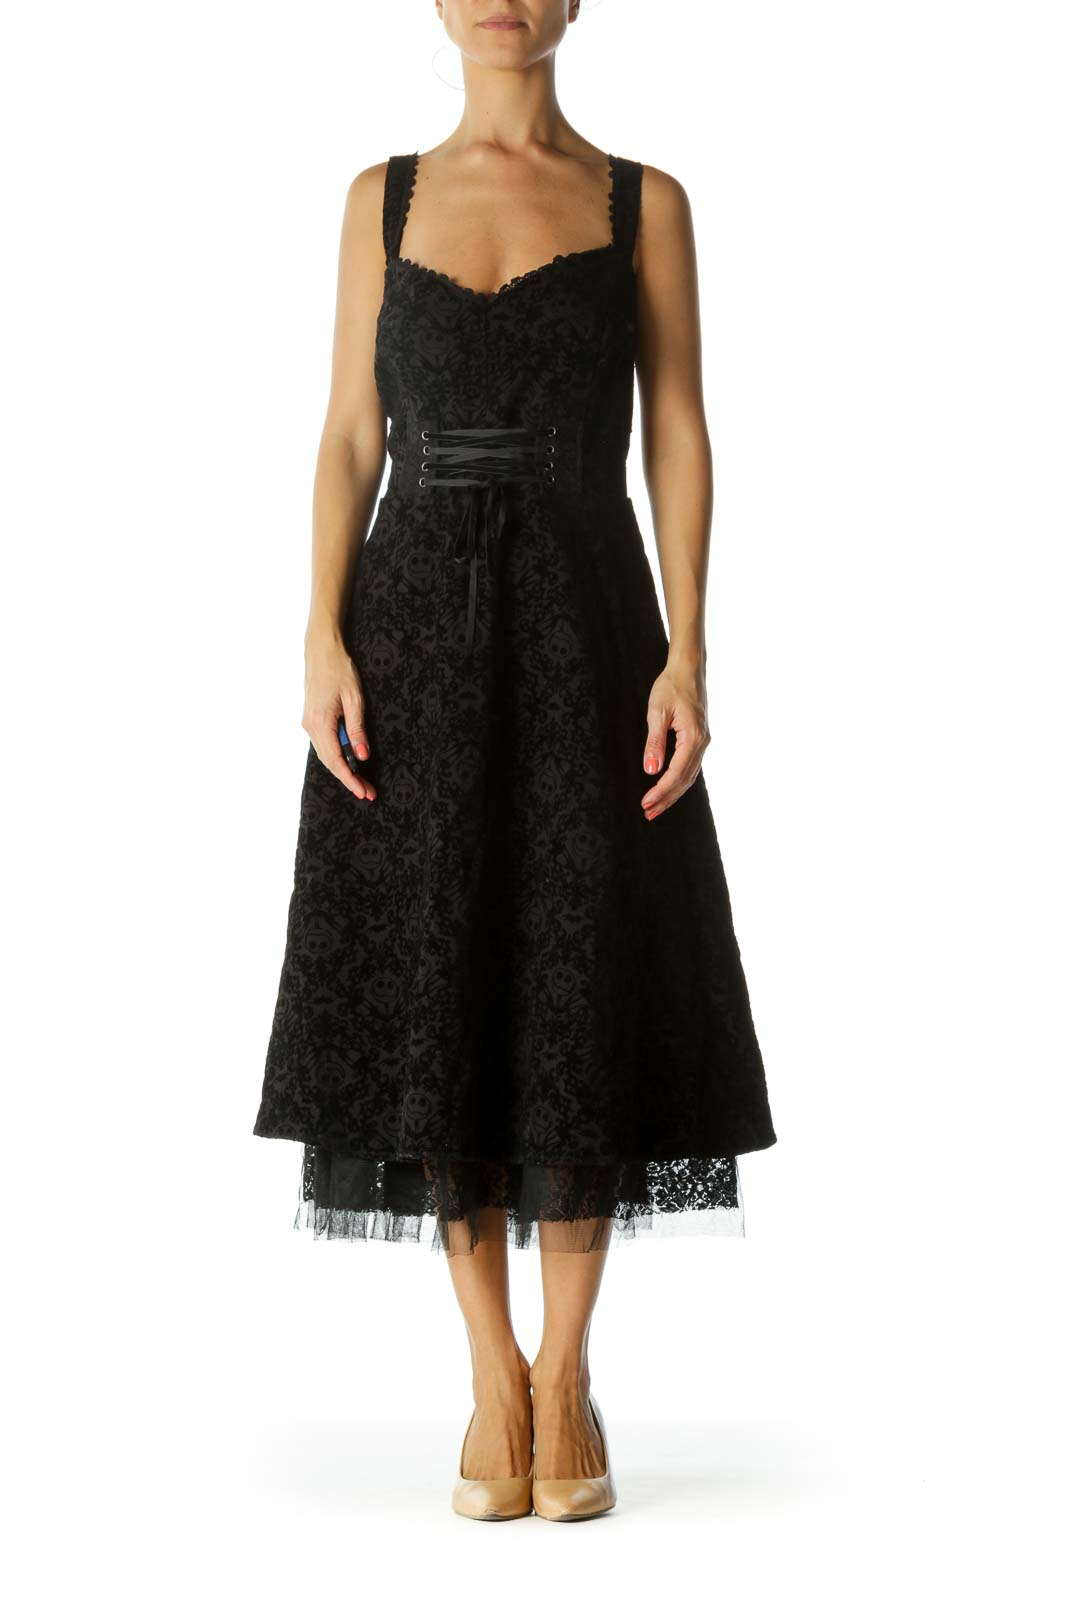 Black Movie Character Velvet Jacquard Front-Lace-Up Tulle Textured Stretch Dress